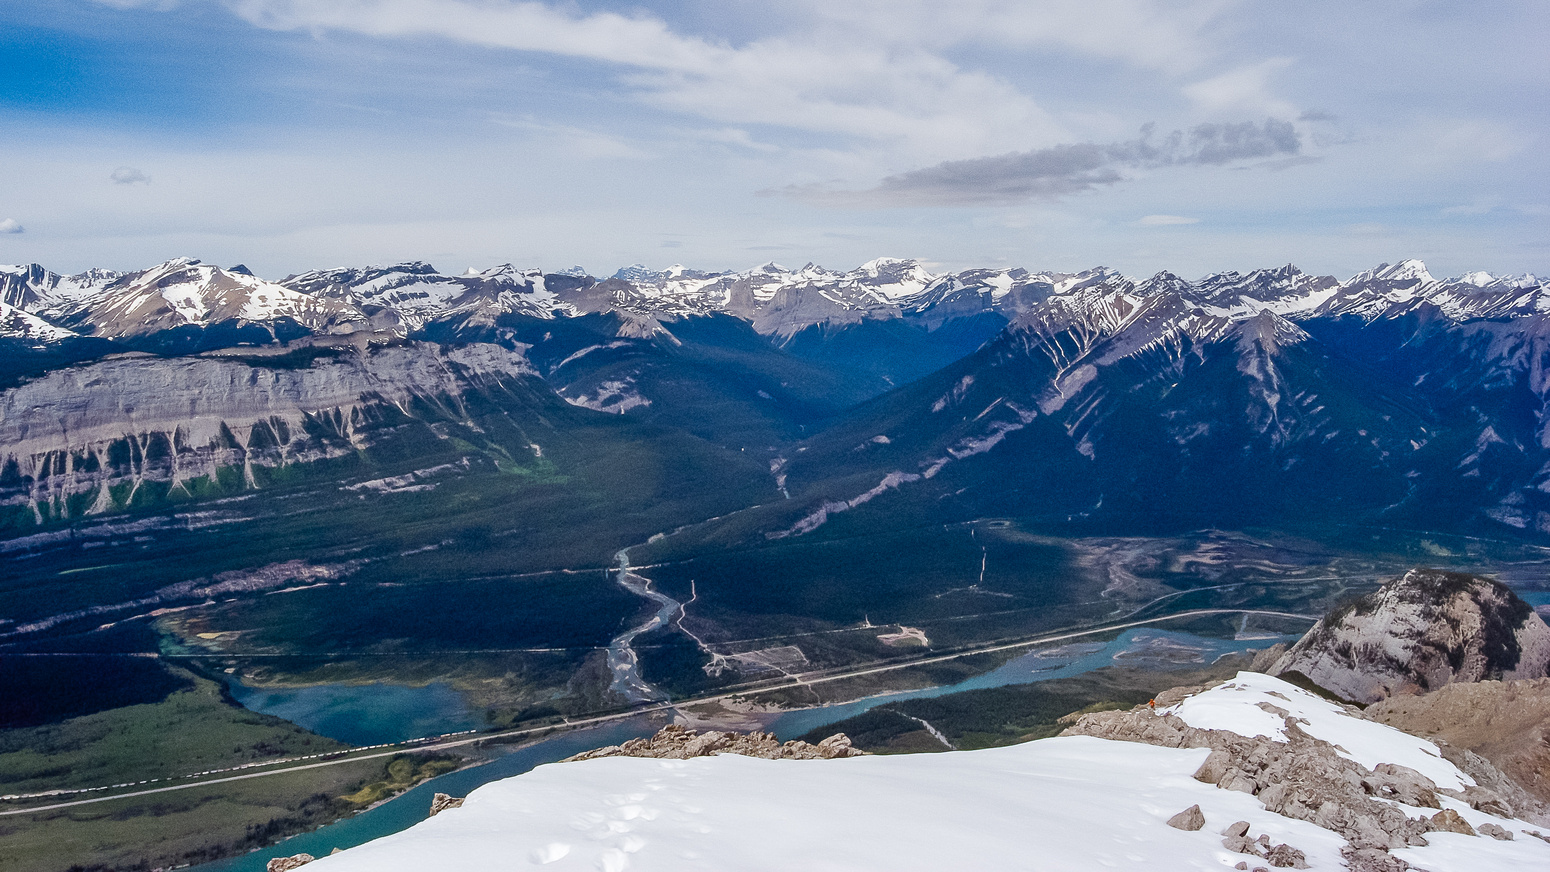 Looking down the summit ridge - note Wietse below me here - the Snaring River at center joining the mighty Athabasca River.